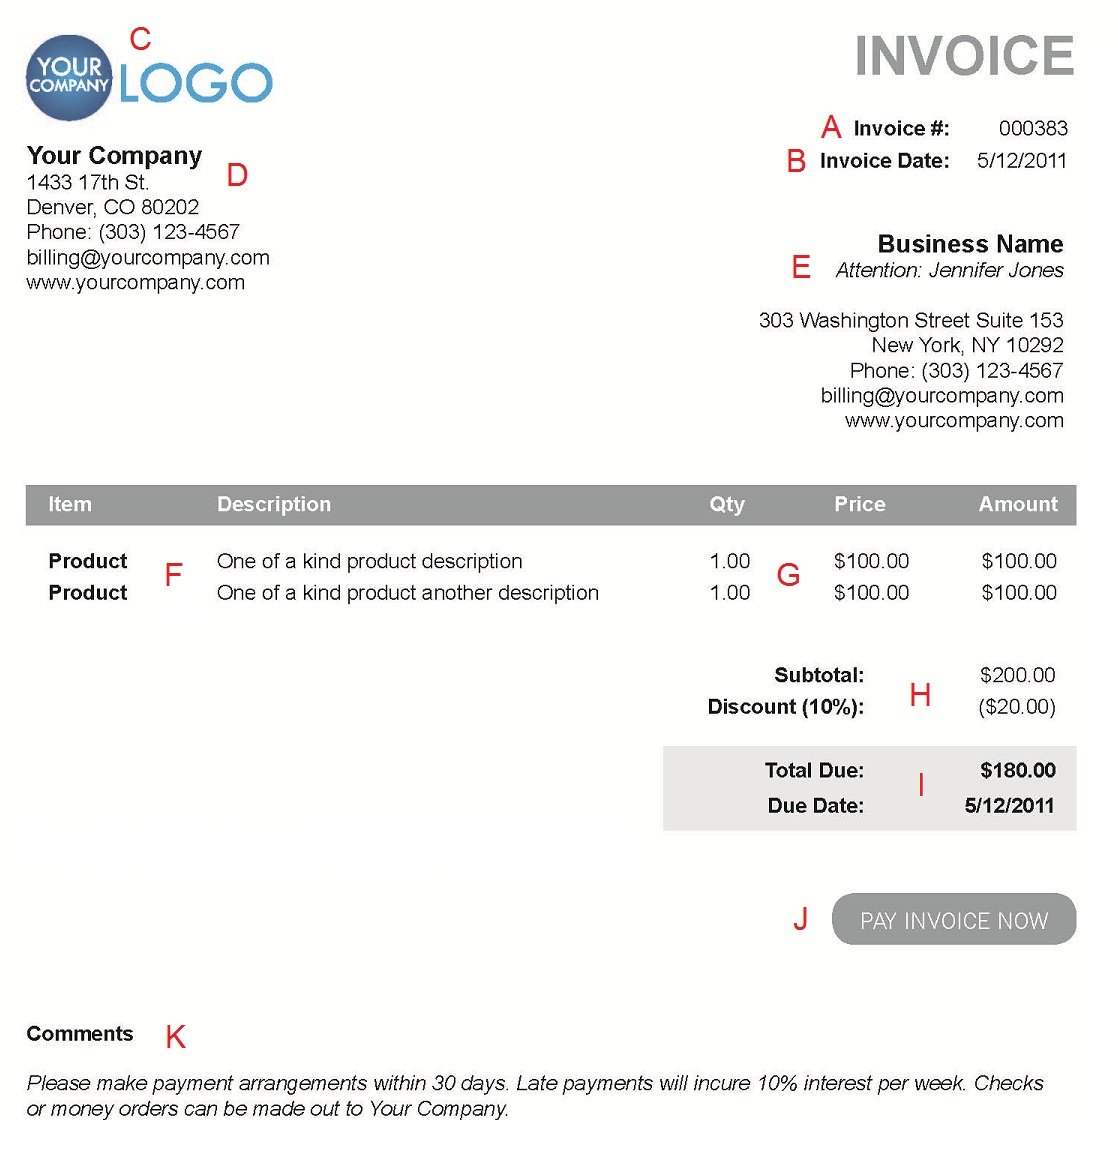 Coachoutletonlineplusus  Marvelous The  Different Sections Of An Electronic Payment Invoice With Inspiring A  With Agreeable Salary Invoice Also Trucking Invoice In Addition Invoice Generator Free Download And Ups Invoice Scam As Well As Customer Database And Invoice Software Additionally How To Email Multiple Invoices In Quickbooks From Paysimplecom With Coachoutletonlineplusus  Inspiring The  Different Sections Of An Electronic Payment Invoice With Agreeable A  And Marvelous Salary Invoice Also Trucking Invoice In Addition Invoice Generator Free Download From Paysimplecom